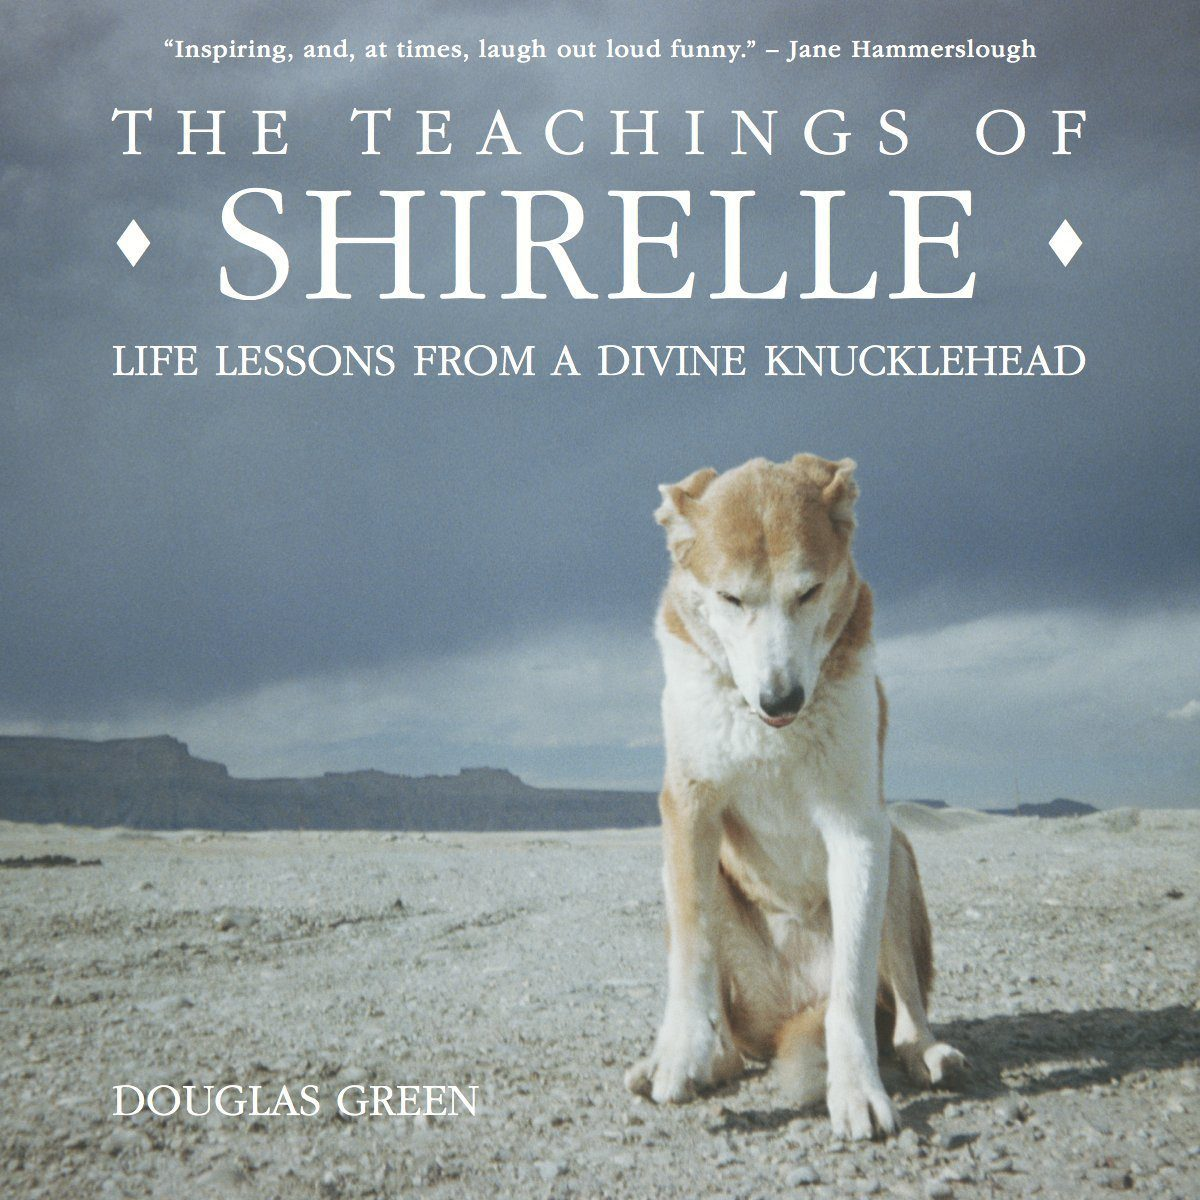 The Teachings of Shirelle: Life Lessons from a Divine Knucklehead http://amzn.to/1POLzuj